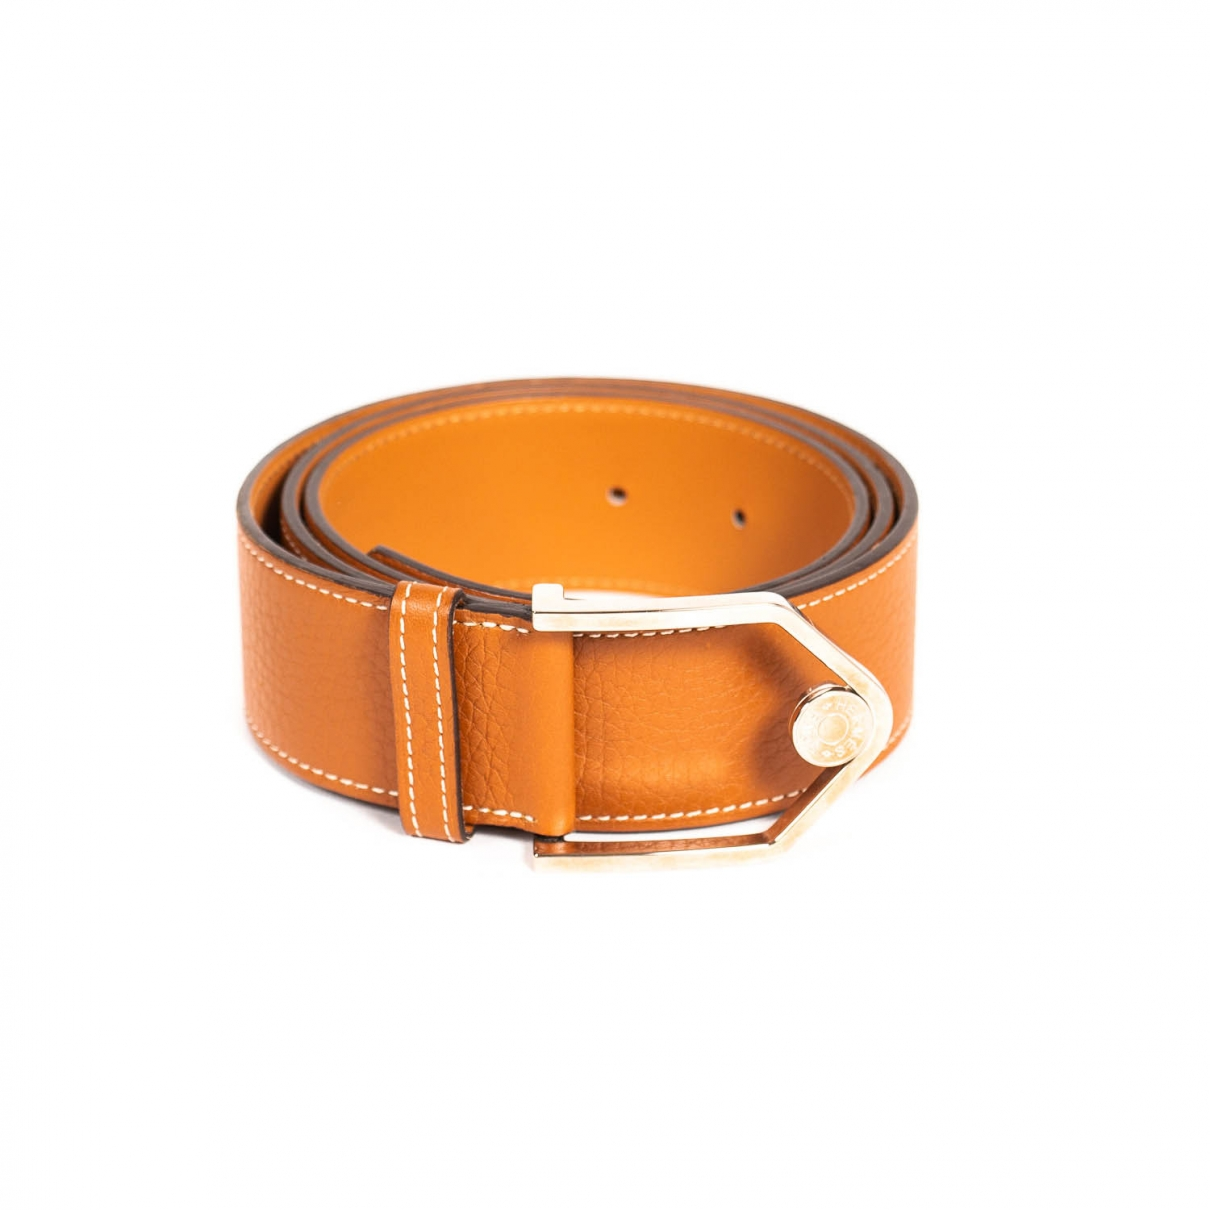 Hermès Belt Camel Leather belt for Men 100 cm